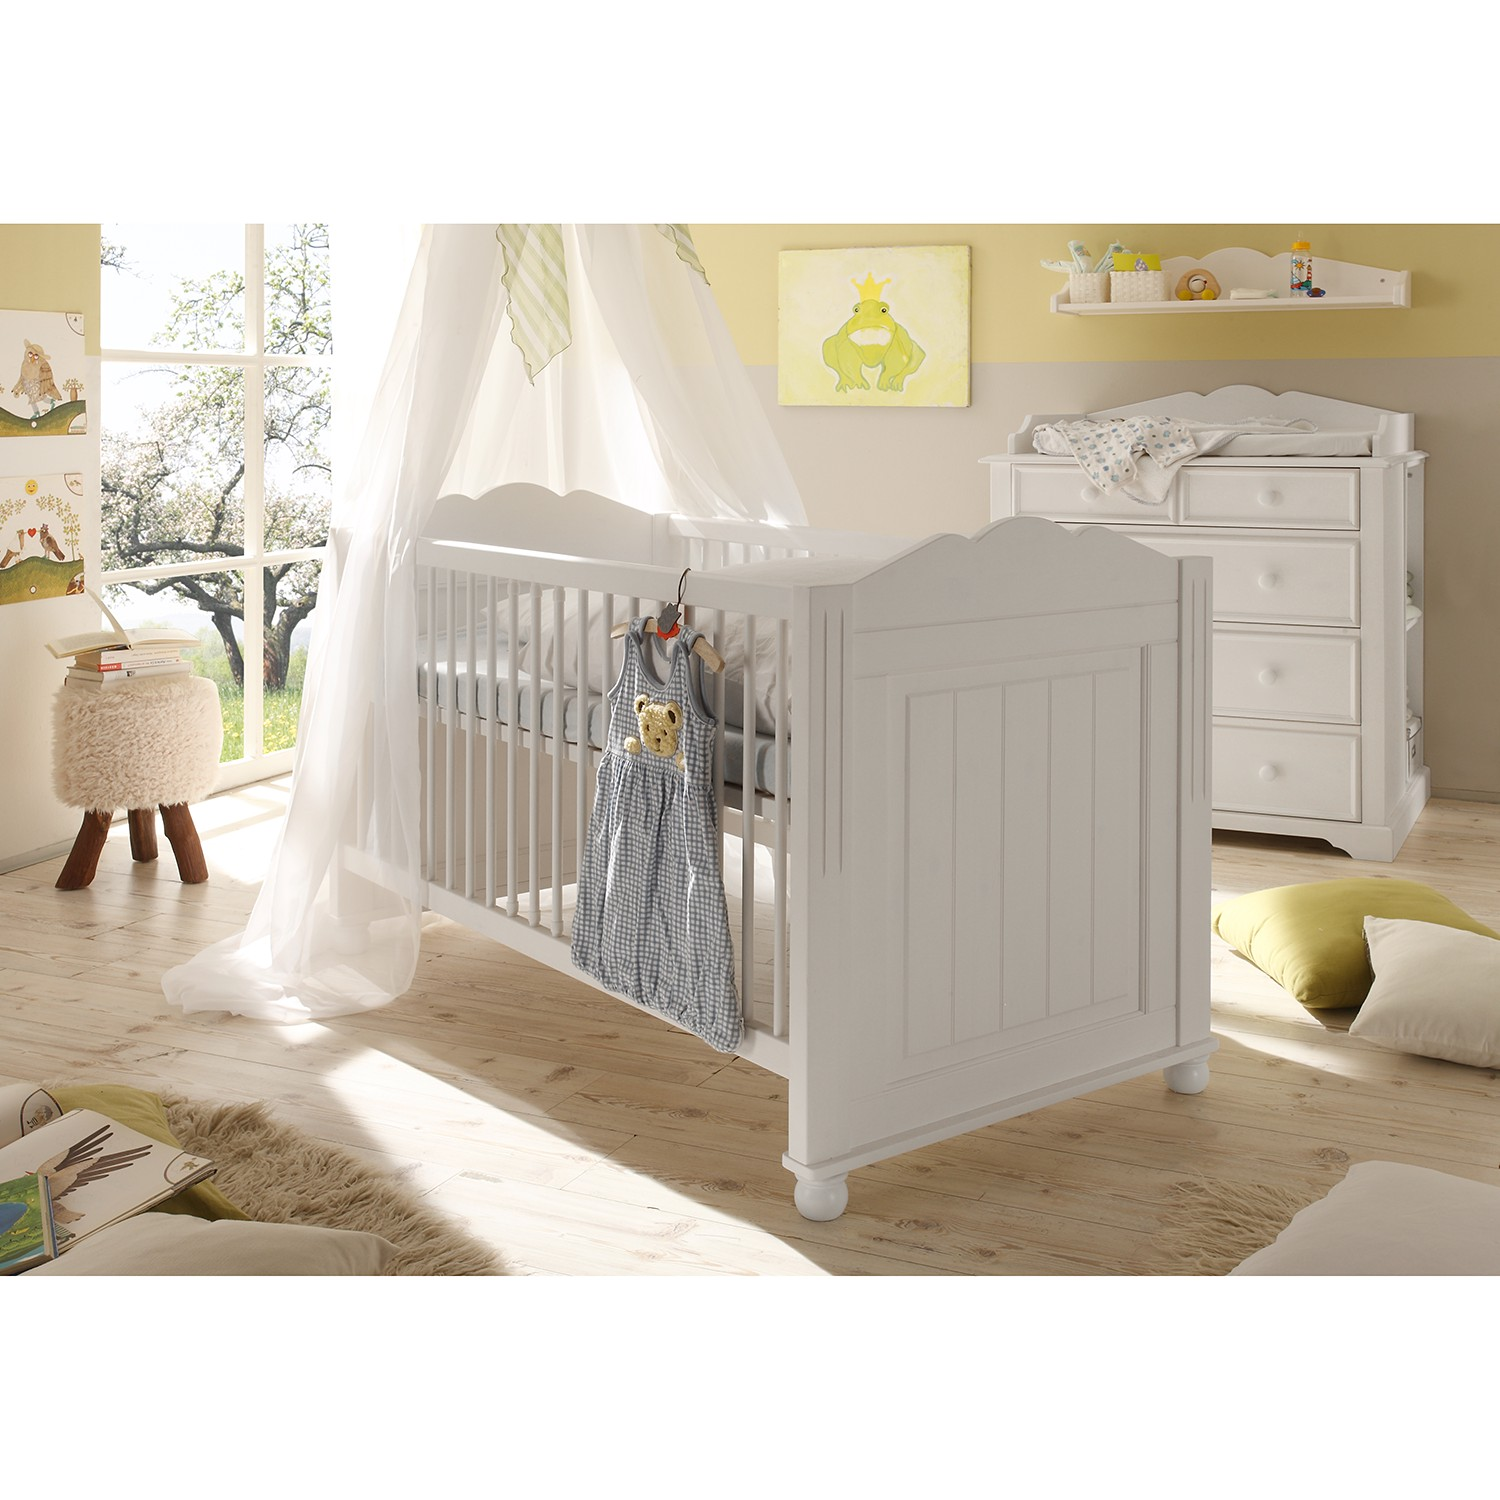 Babybett Cinderella, Kids Club Collection